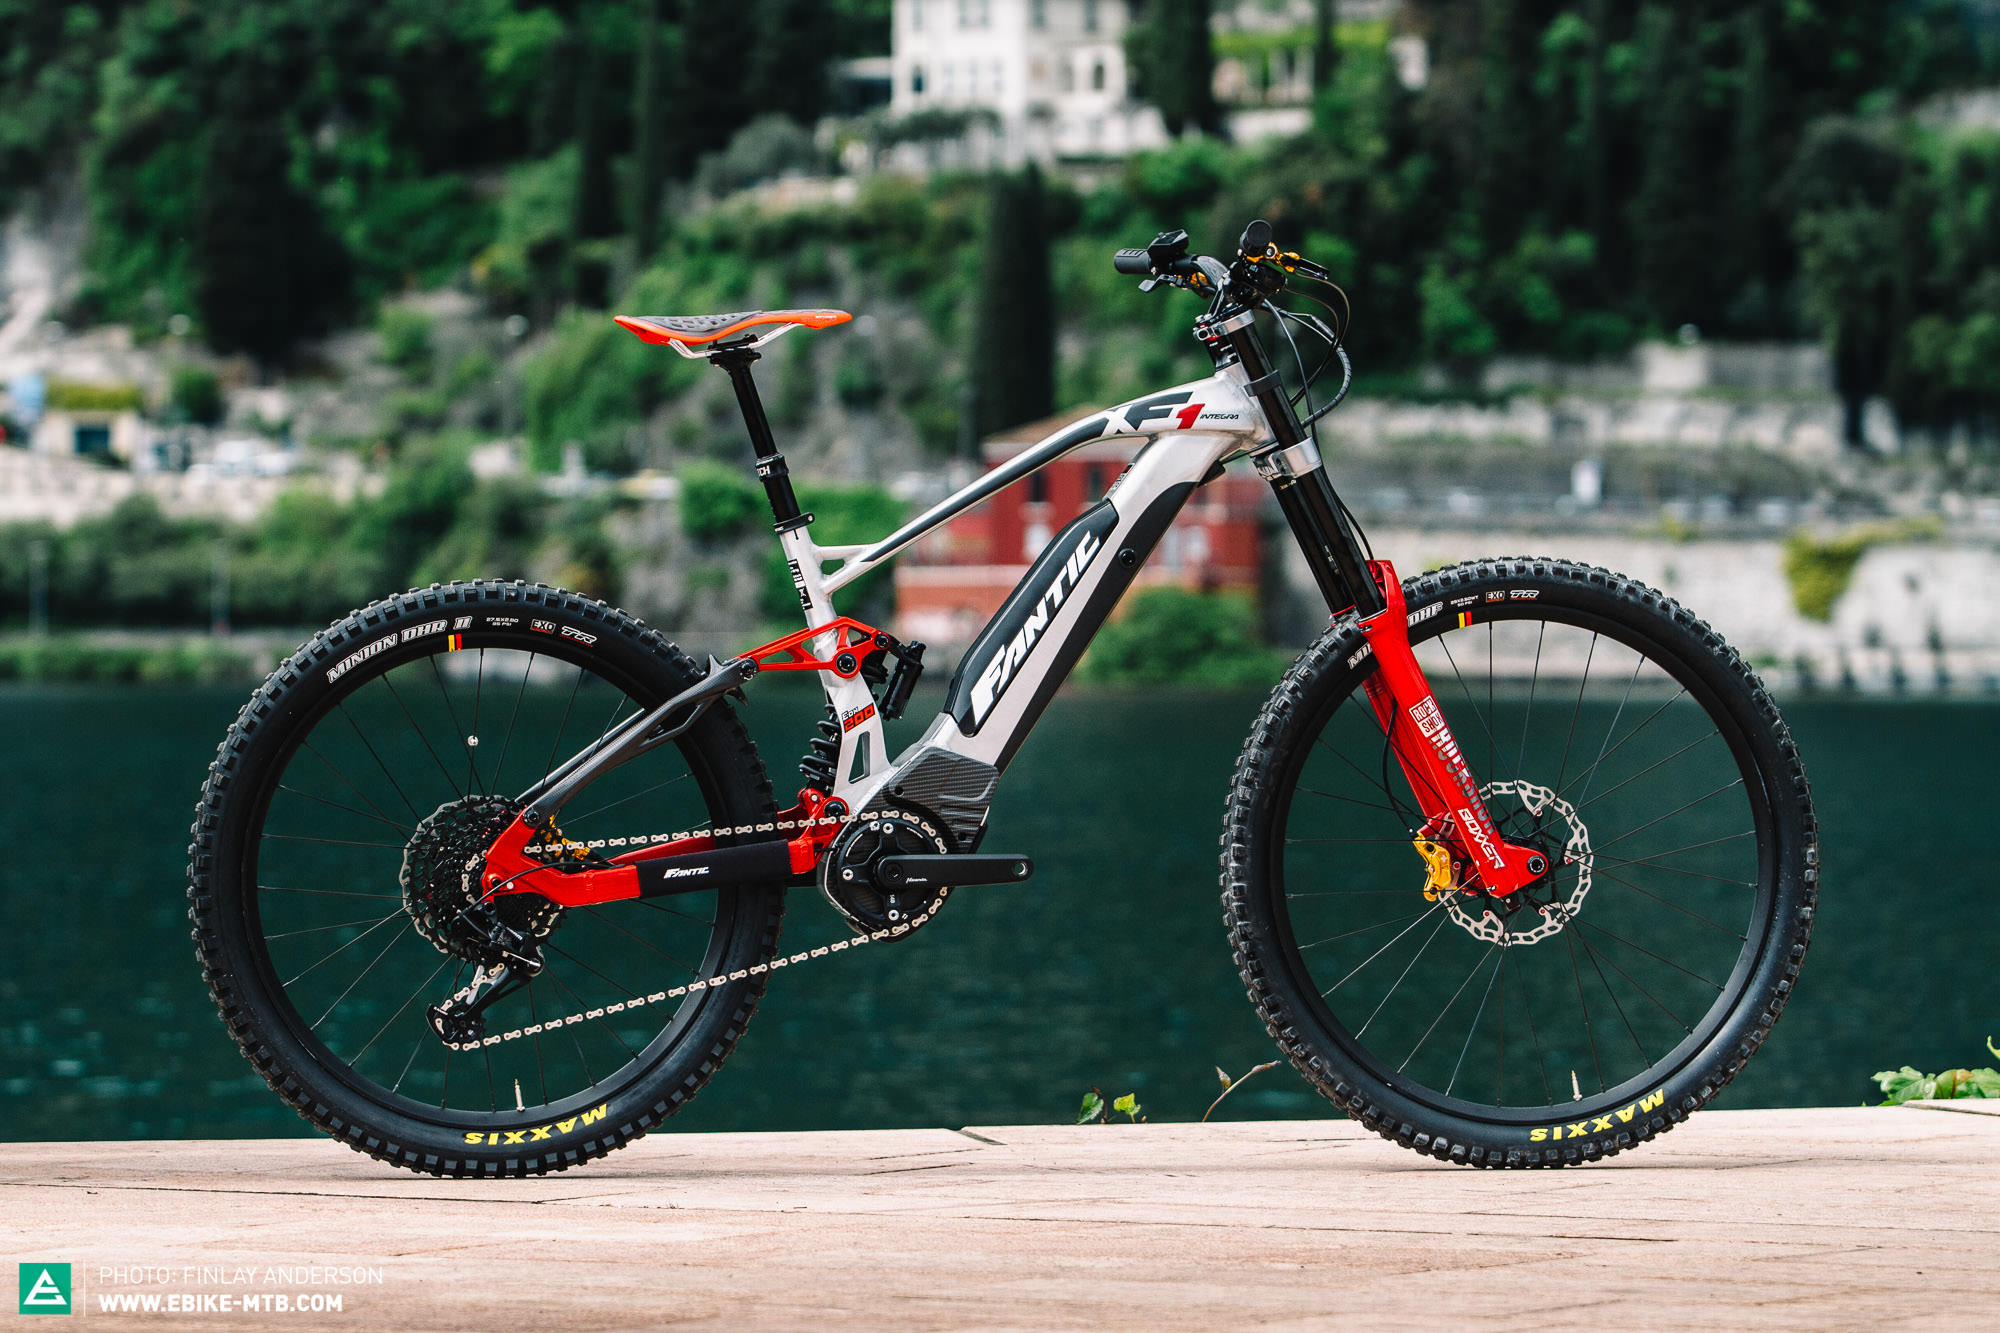 6508233f566 FANTIC XF1 Integra 200 DH – Limited Edition Downhill eMTB introduced ...